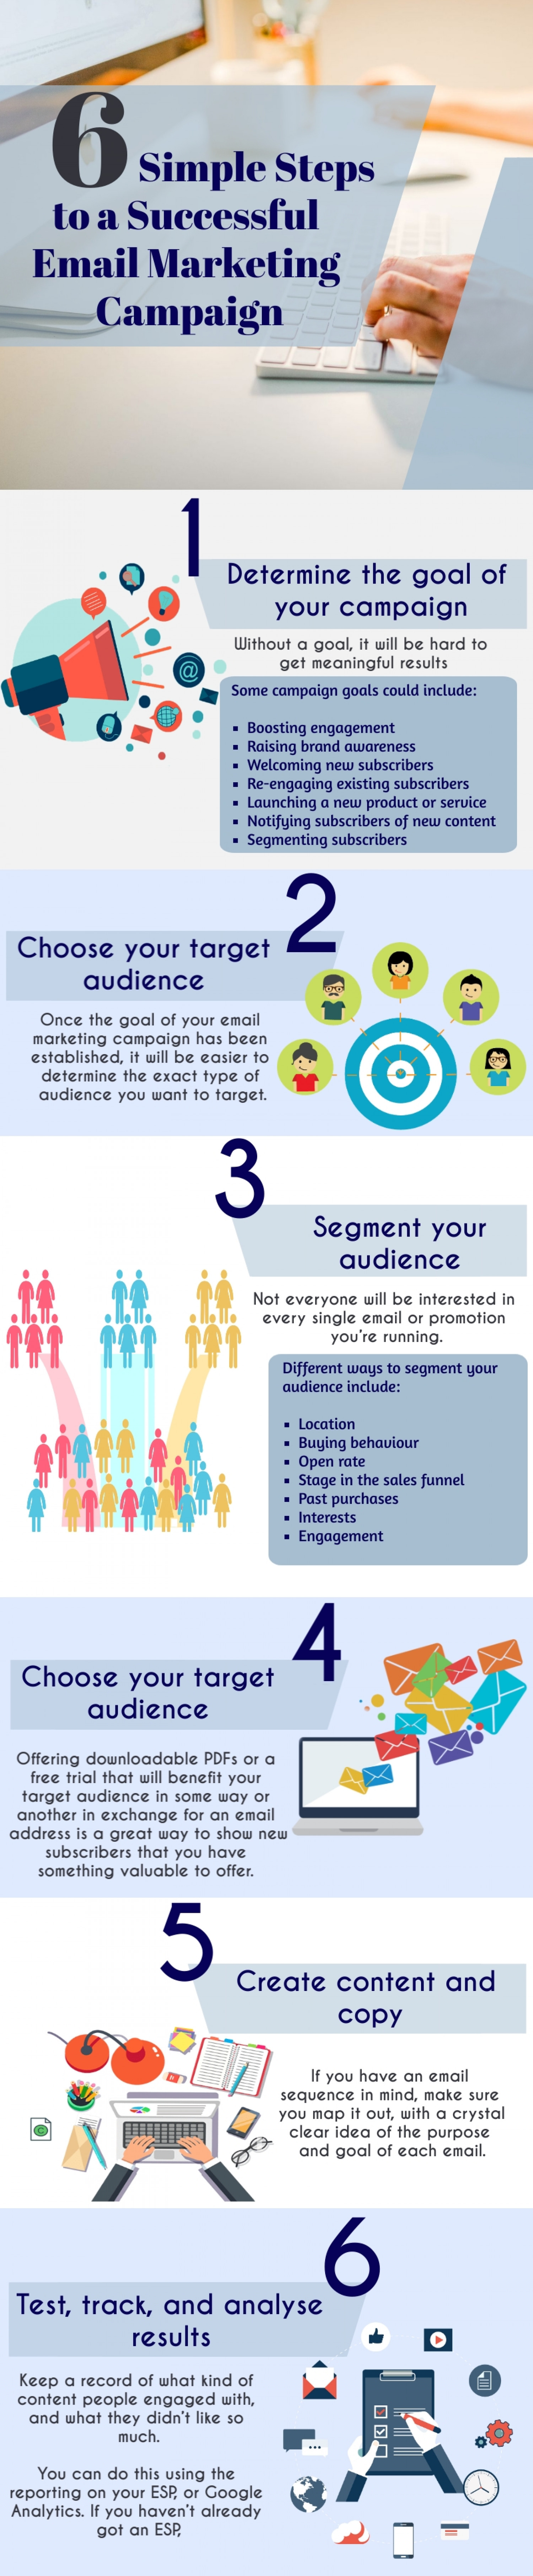 6 Simple Steps to a Successful Email Marketing Campaign Infographic